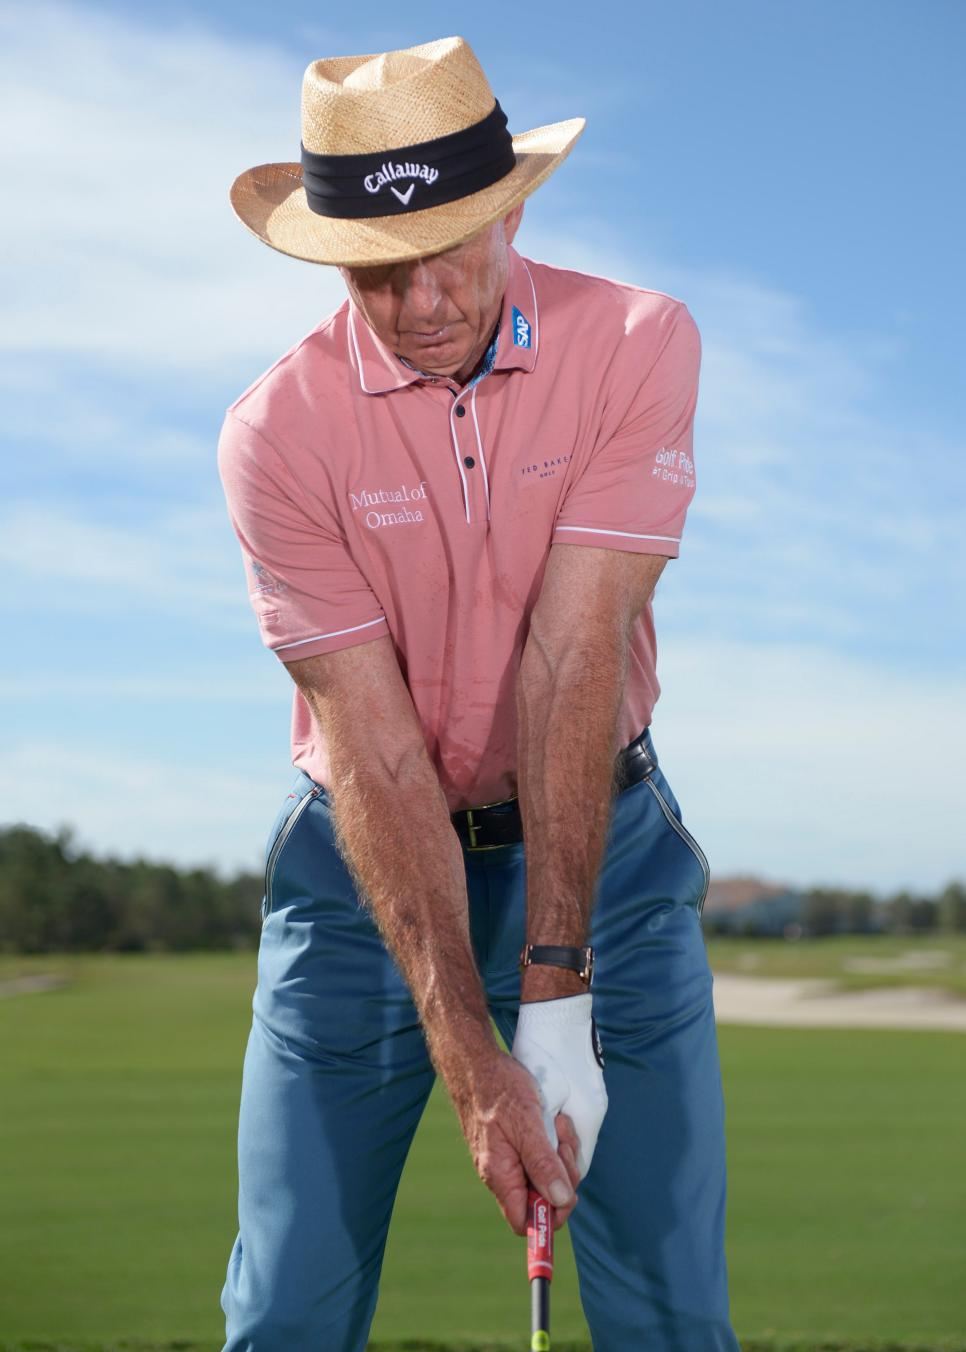 David-Leadbetter-pitching-grip-pressure.jpg